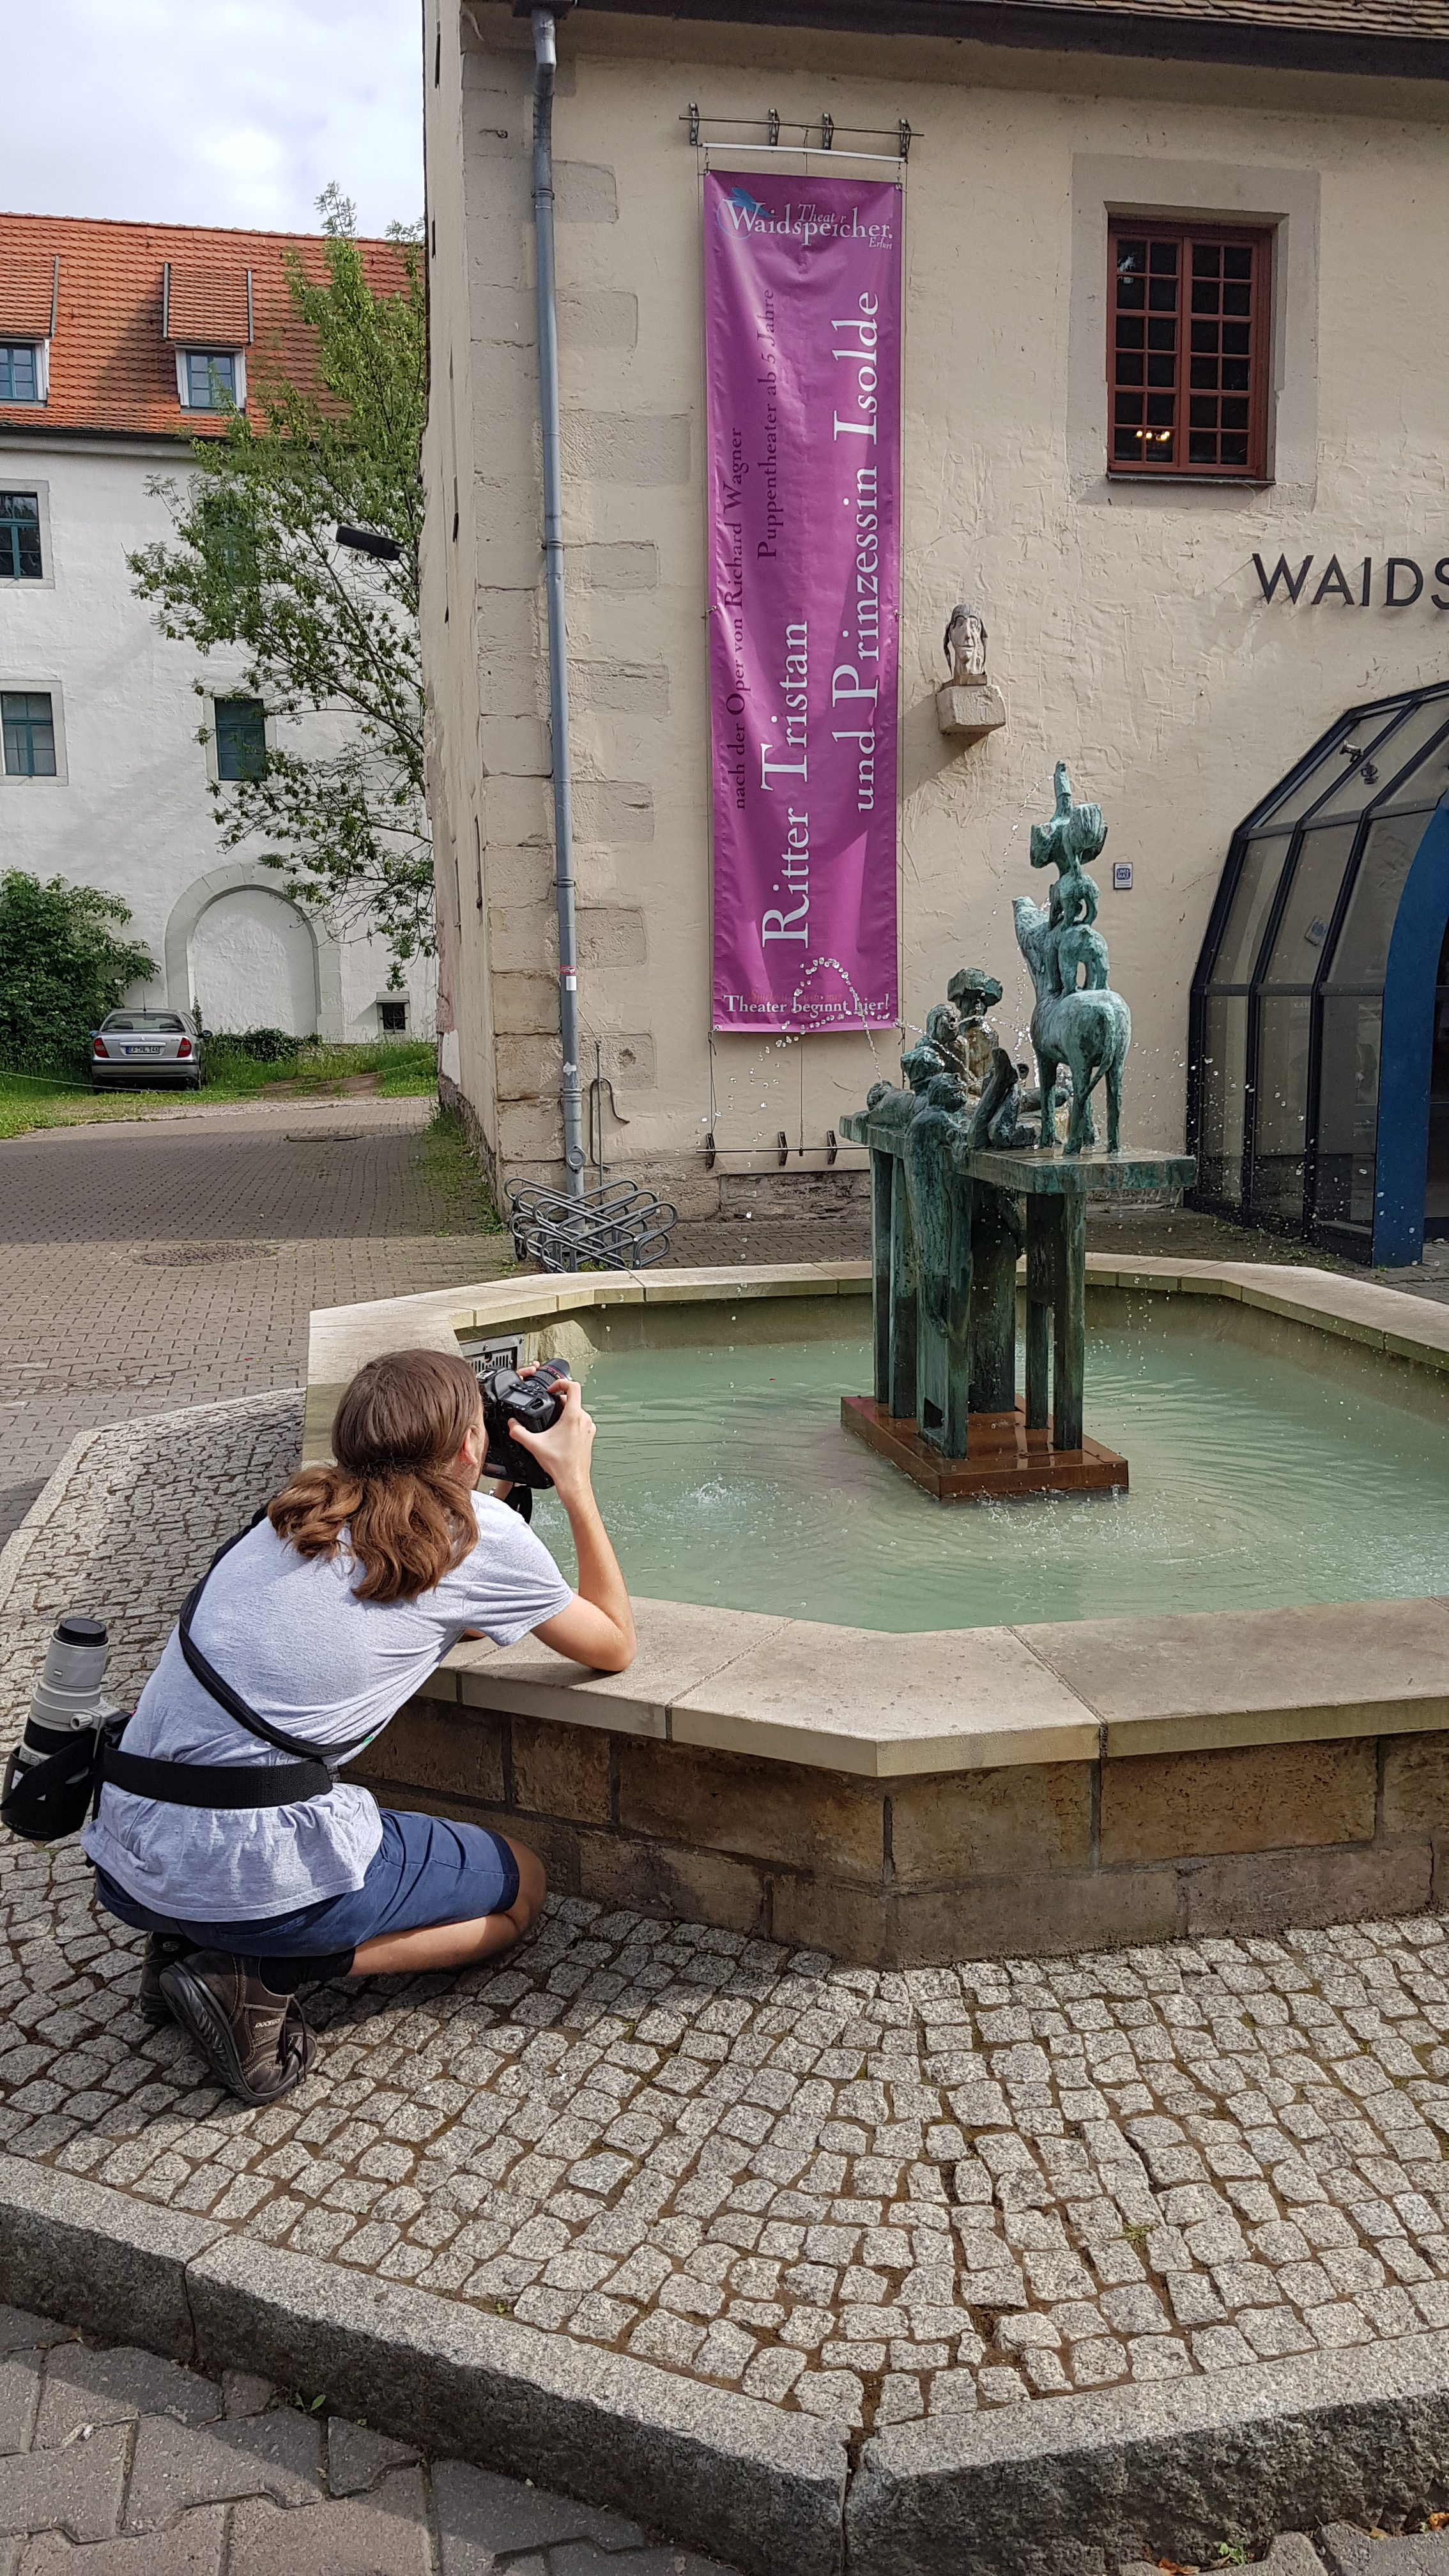 Elisabeth Mandl für WMDE, Jungwikipedianer in Erfurt 2, CC BY-SA 4.0 (https://creativecommons.org/licenses/by/4.0/)